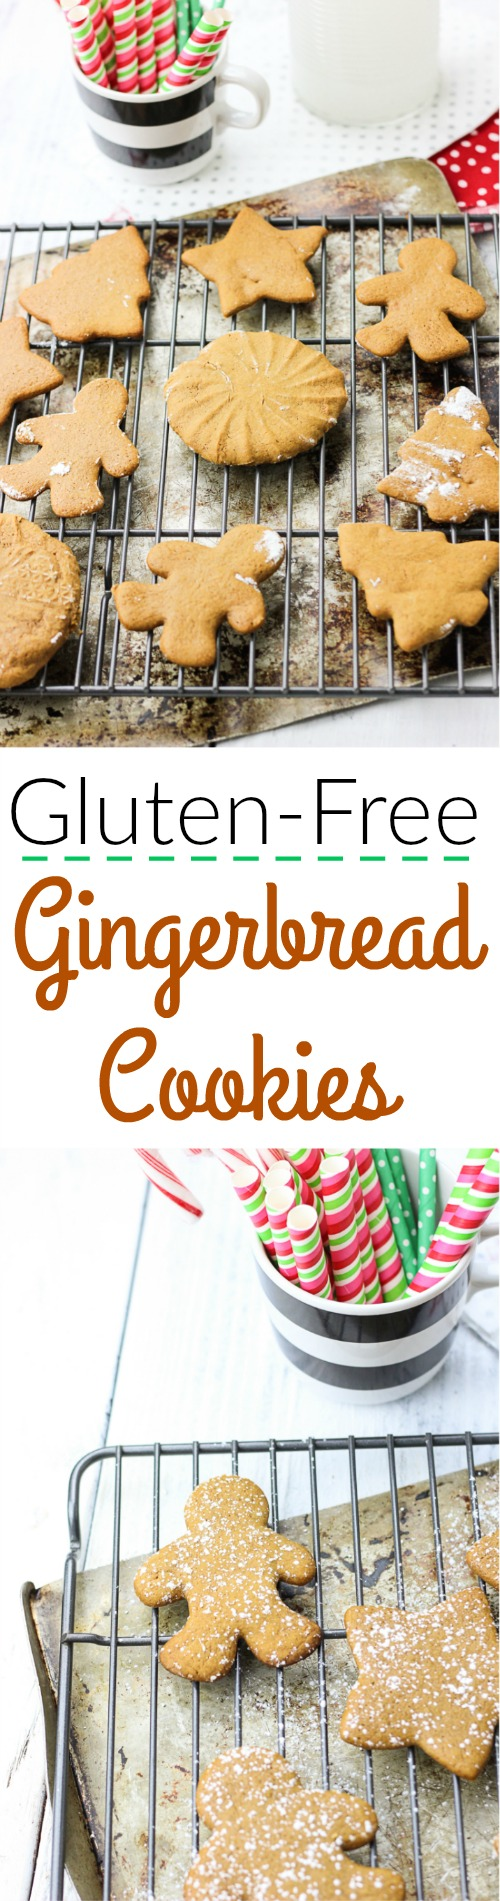 These are the best gluten-free gingerbread cookies you will find! These gluten-free gingerbread cookies are soft, moist, and shapeable, can be easily prepped ahead of time, and are sweet and delicious, just like gingerbread cookies should be!